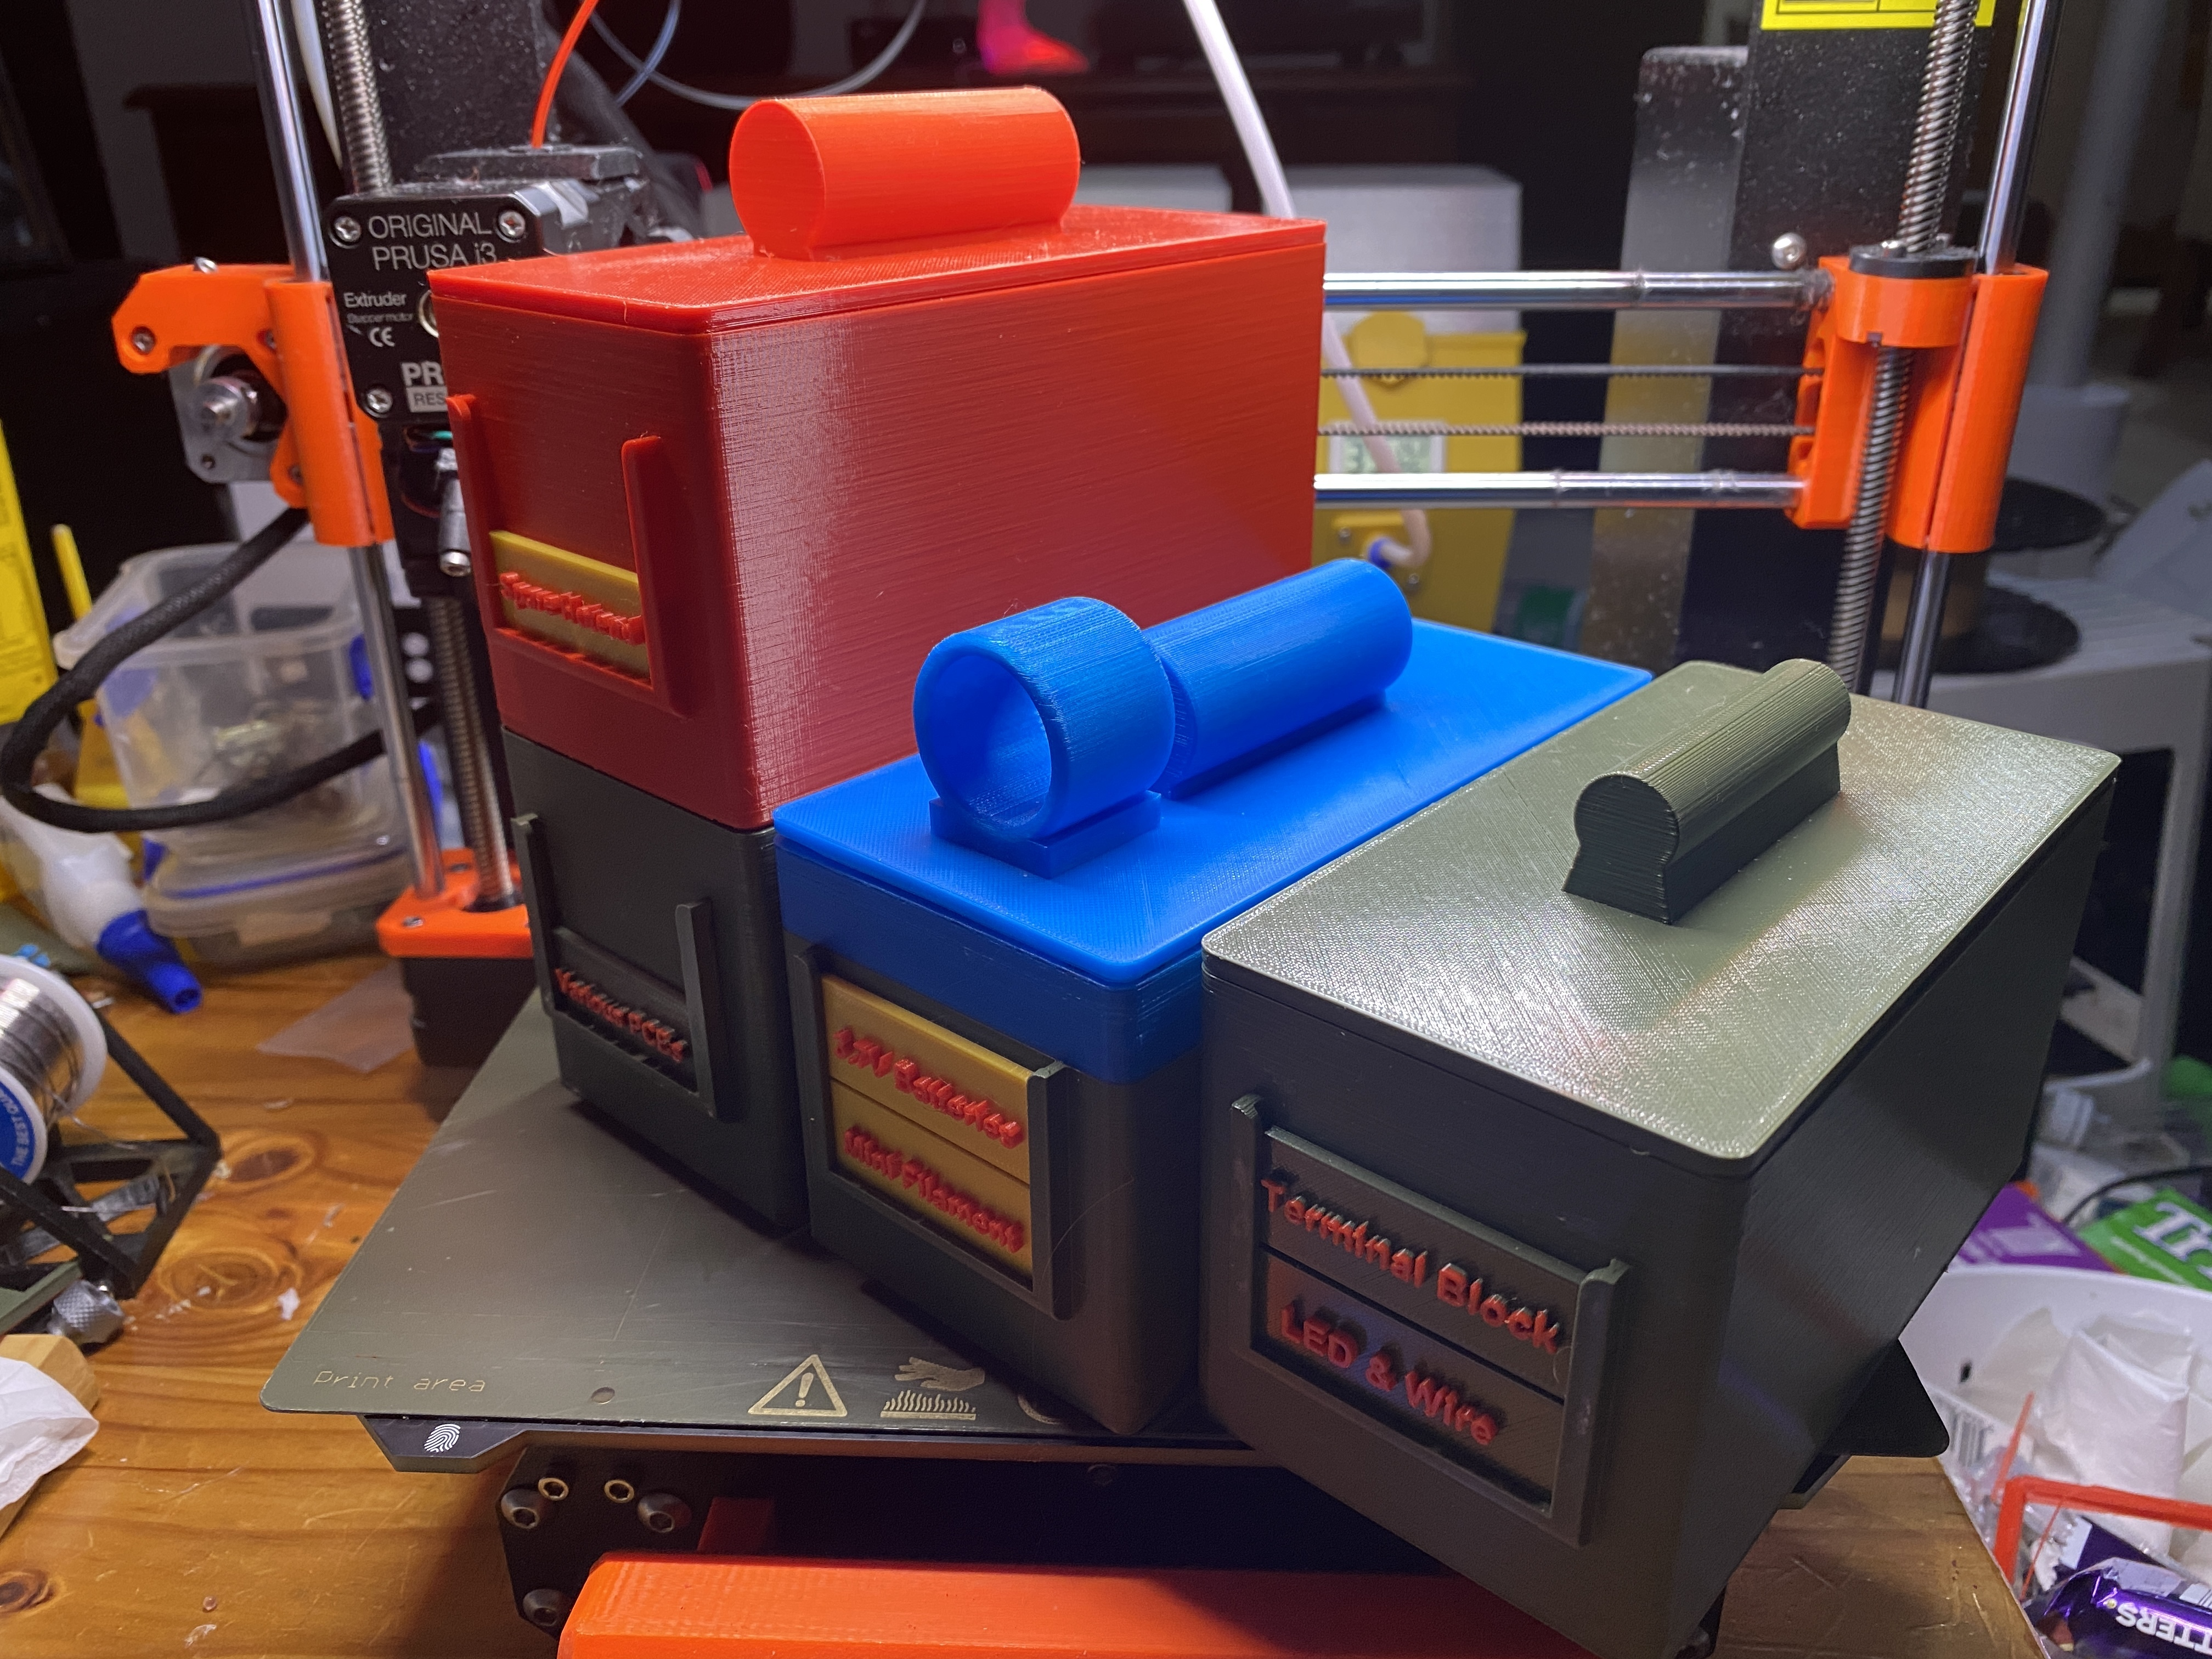 IMG_0424.JPG Download free STL file Tight-Fitting Lids on Containers • 3D printer model, christinewhybrow